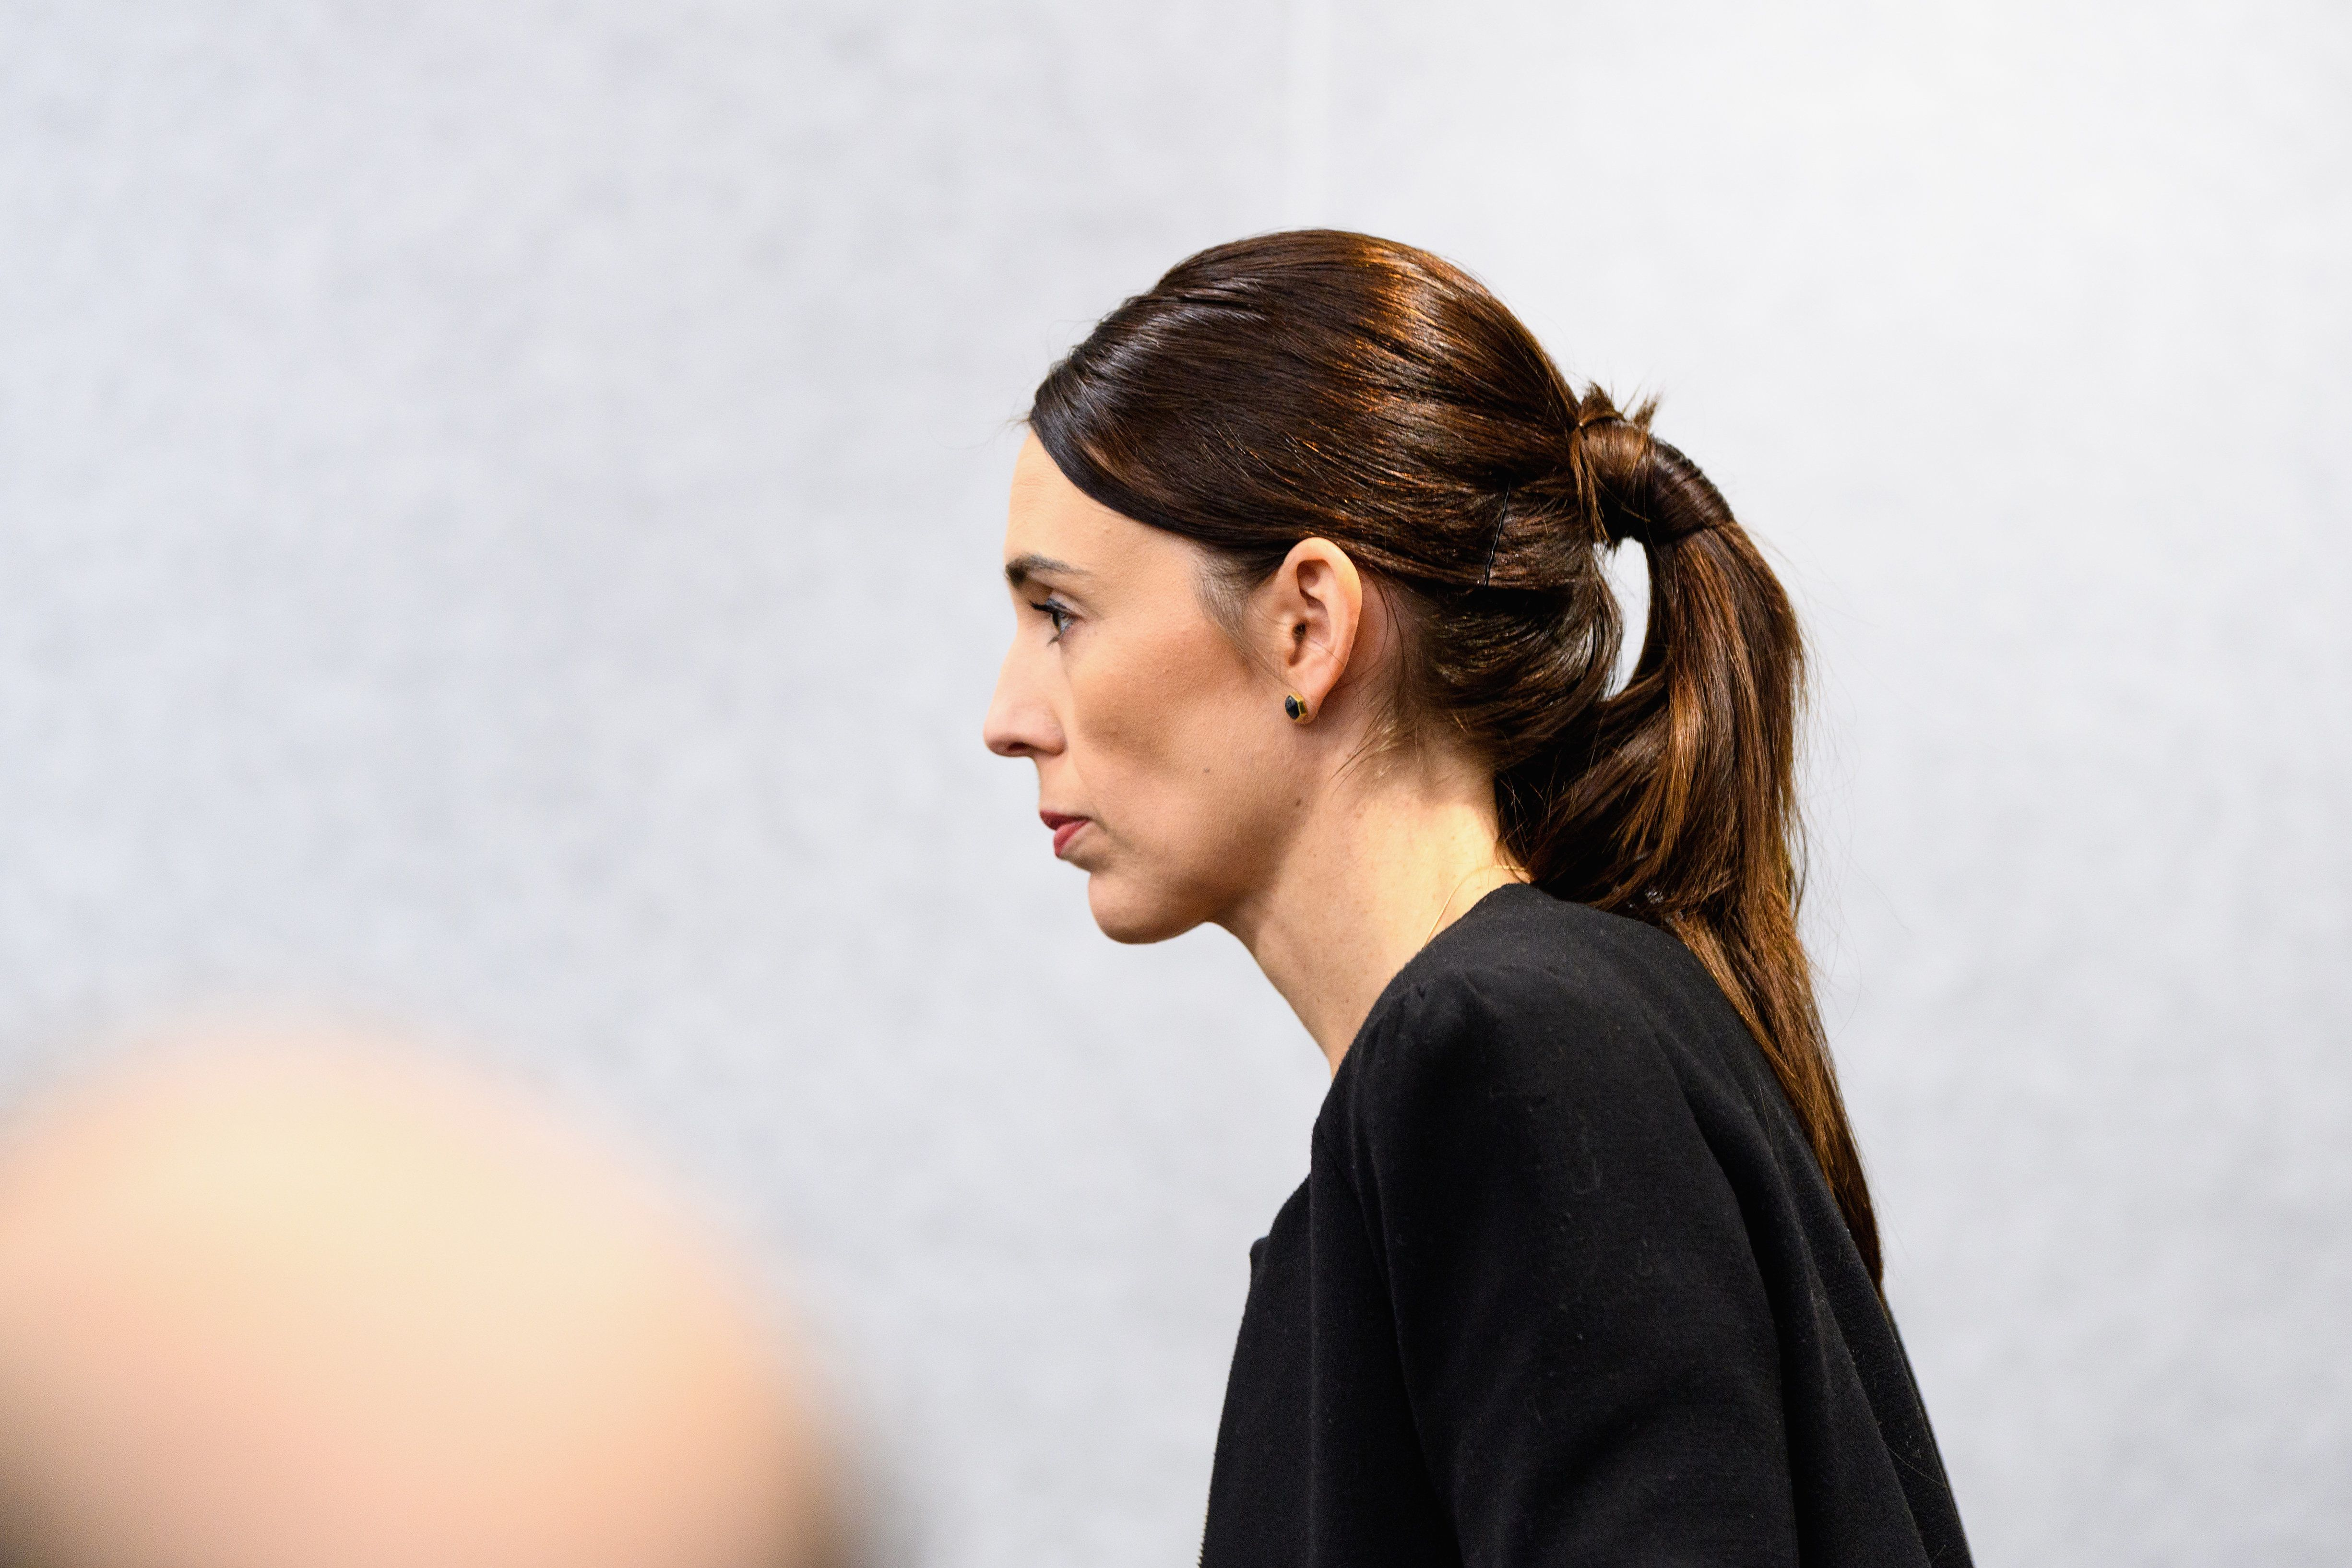 CHRISTCHURCH, NEW ZEALAND - MARCH 20: New Zealand Prime Minister Jacinda Ardern arrives for a press conference at the Justice and Emergency Services precinct on March 20, 2019 in Christchurch, New Zealand. 50 people were killed, and dozens are still injured in hospital after a gunman opened fire on two Christchurch mosques on Friday, 15 March. The accused attacker, 28-year-old Australian, Brenton Tarrant, has been charged with murder and remanded in custody until April 5. The attack is the worst mass shooting in New Zealand's history. (Photo by Kai Schwoerer/Getty Images)